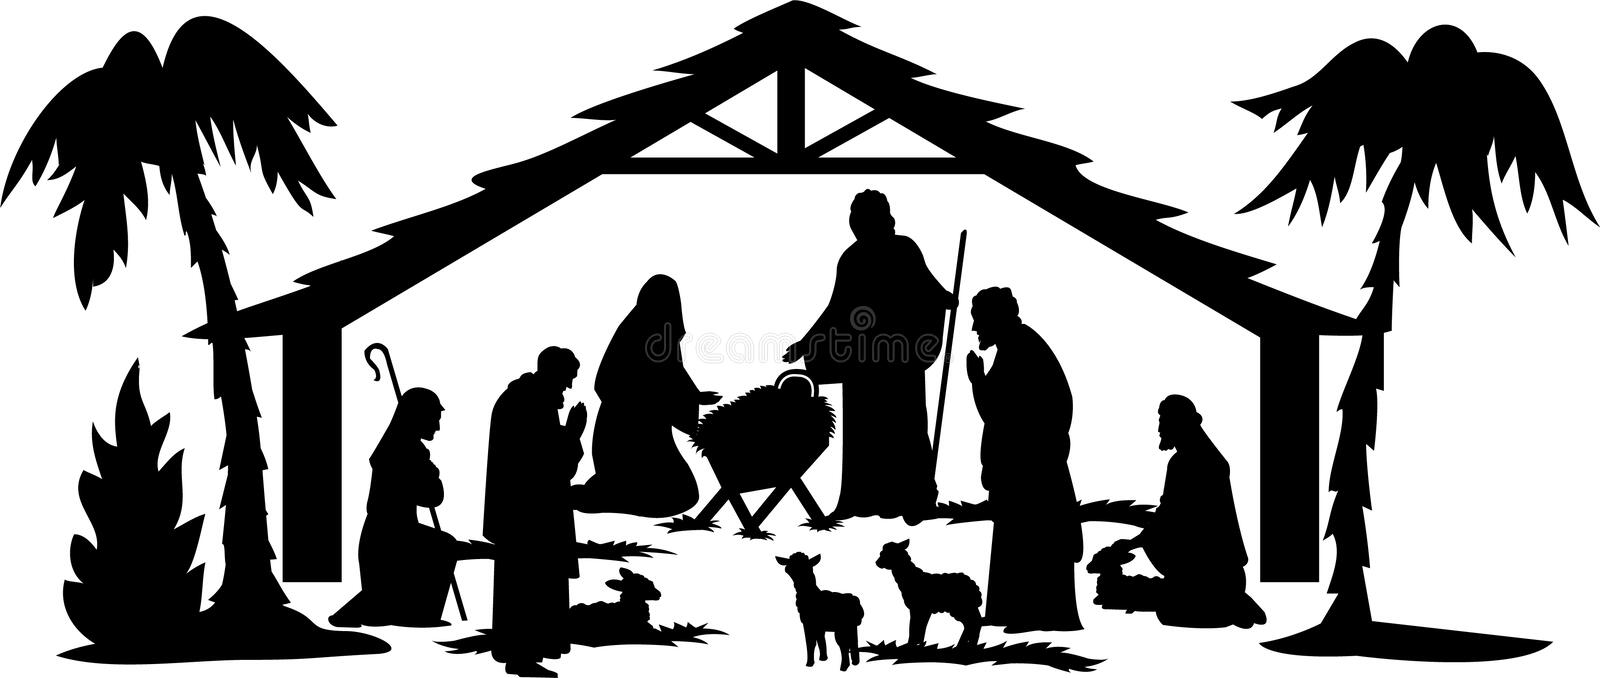 eps-nativitysilhouette royaltyfri illustrationer